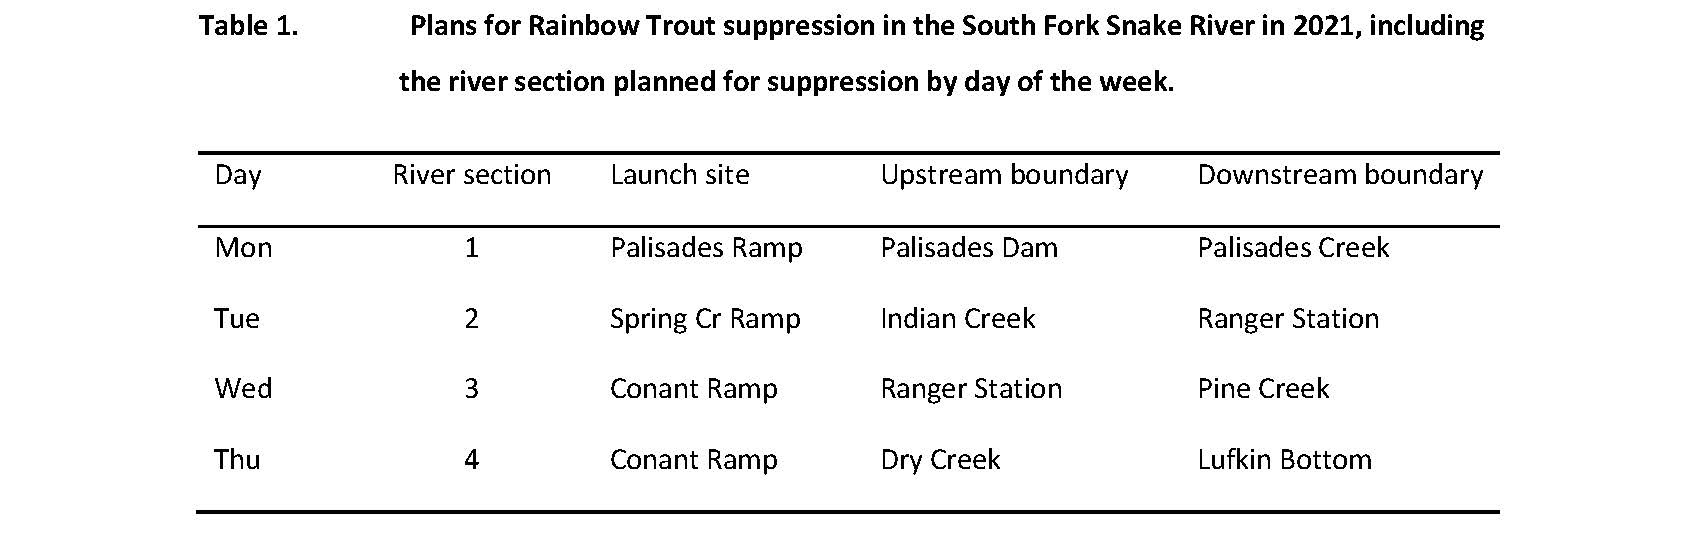 Table 1.                Plans for Rainbow Trout suppression in the South Fork Snake River in 2021, including the river section planned for suppression by day of the week.